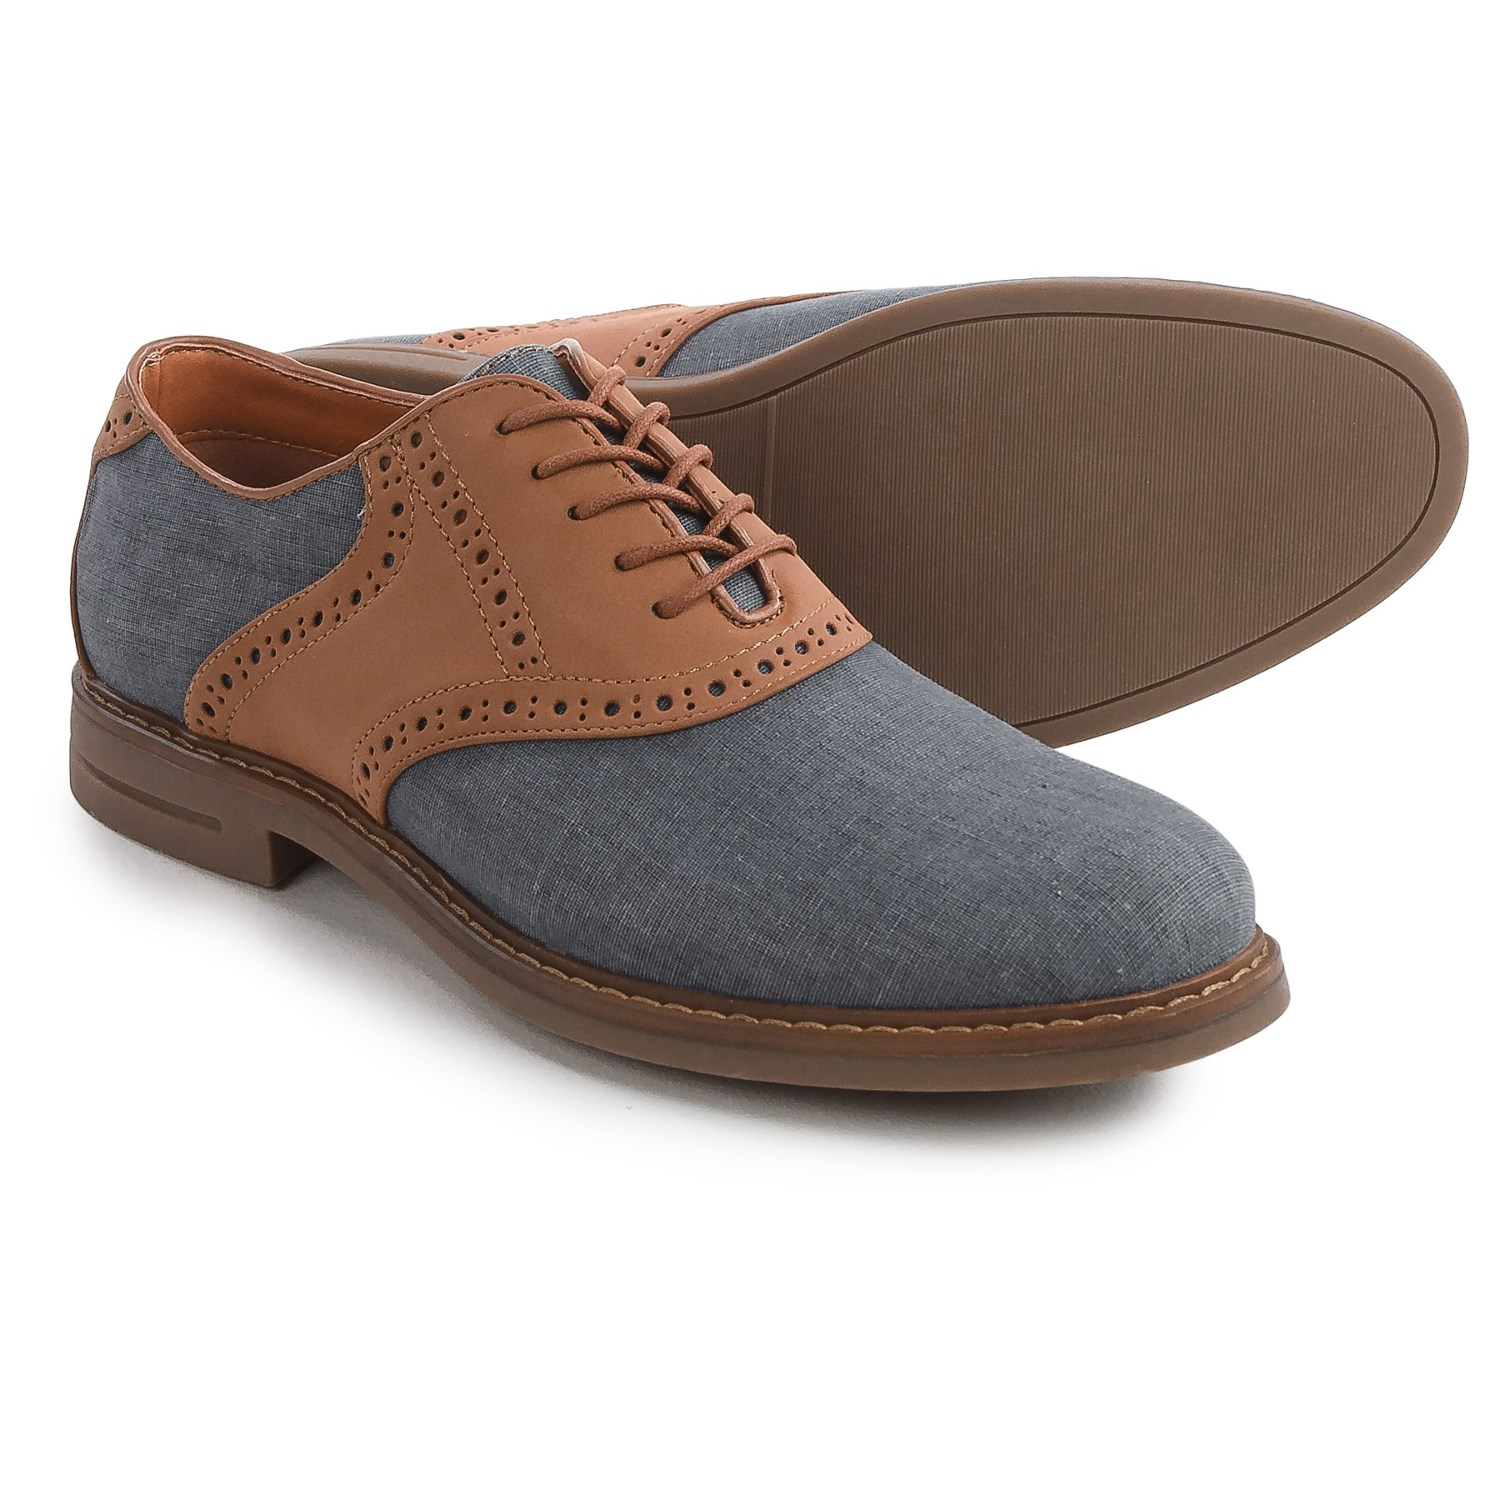 Free shipping BOTH ways on Oxfords, from our vast selection of styles. Fast delivery, and 24/7/ real-person service with a smile. Click or call